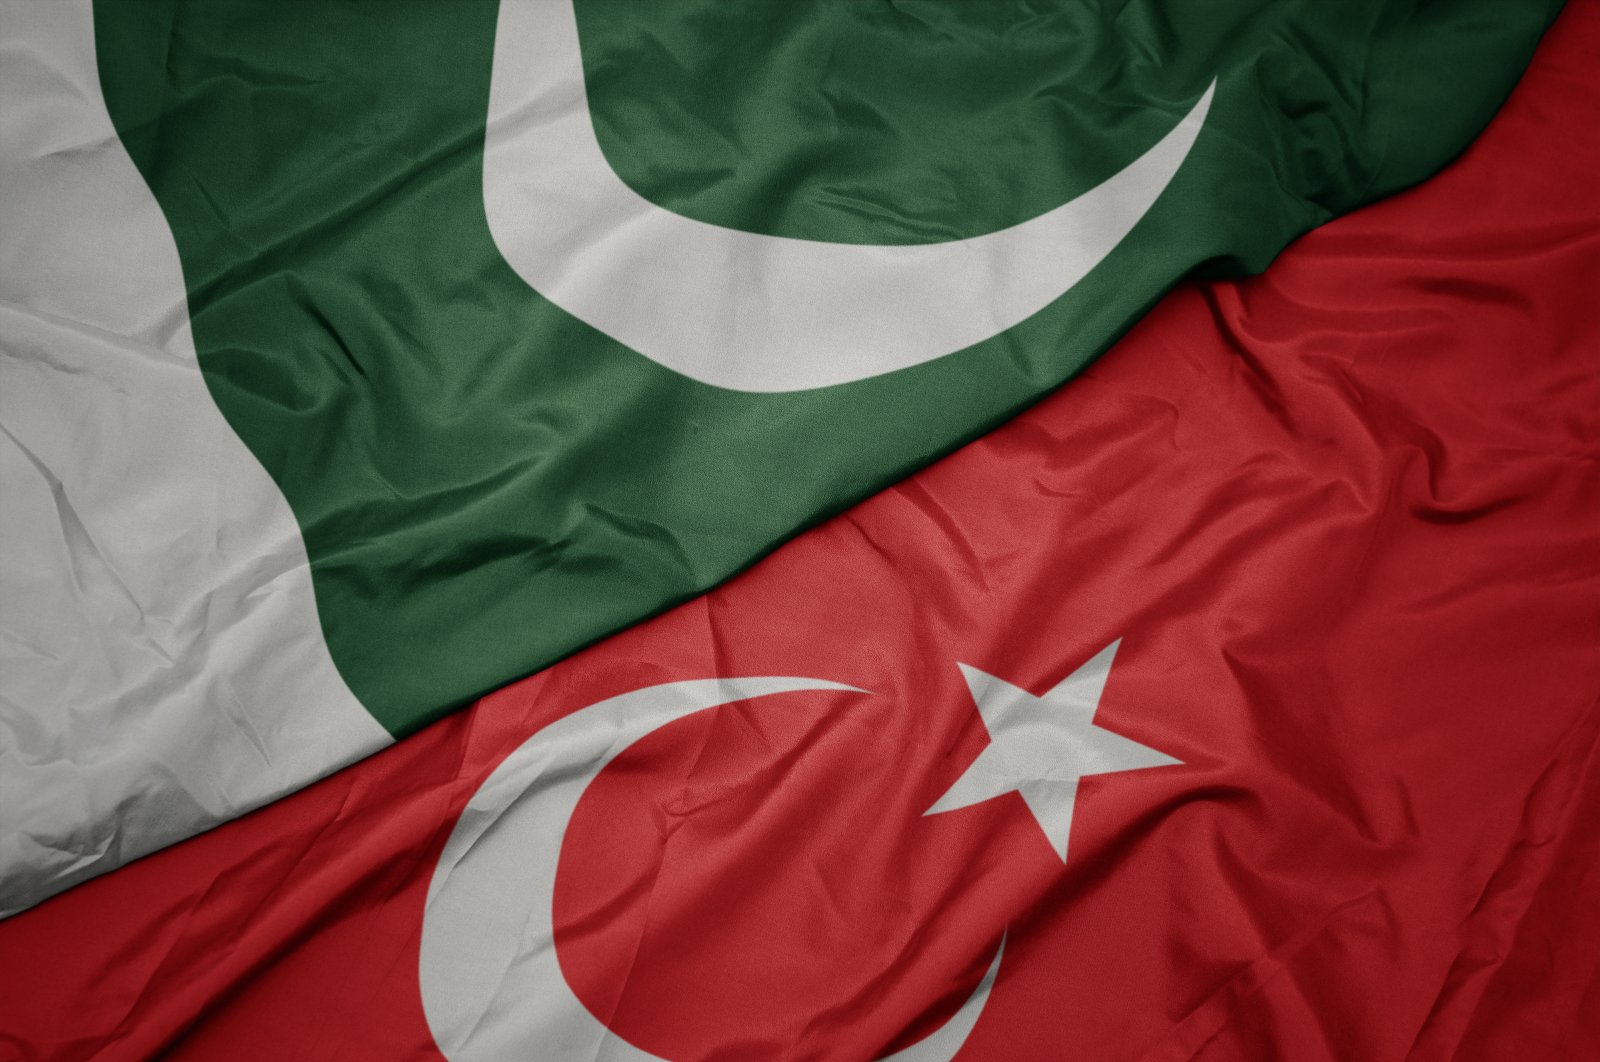 Pakistan and Turkey flags. (Shutterstock Photo)